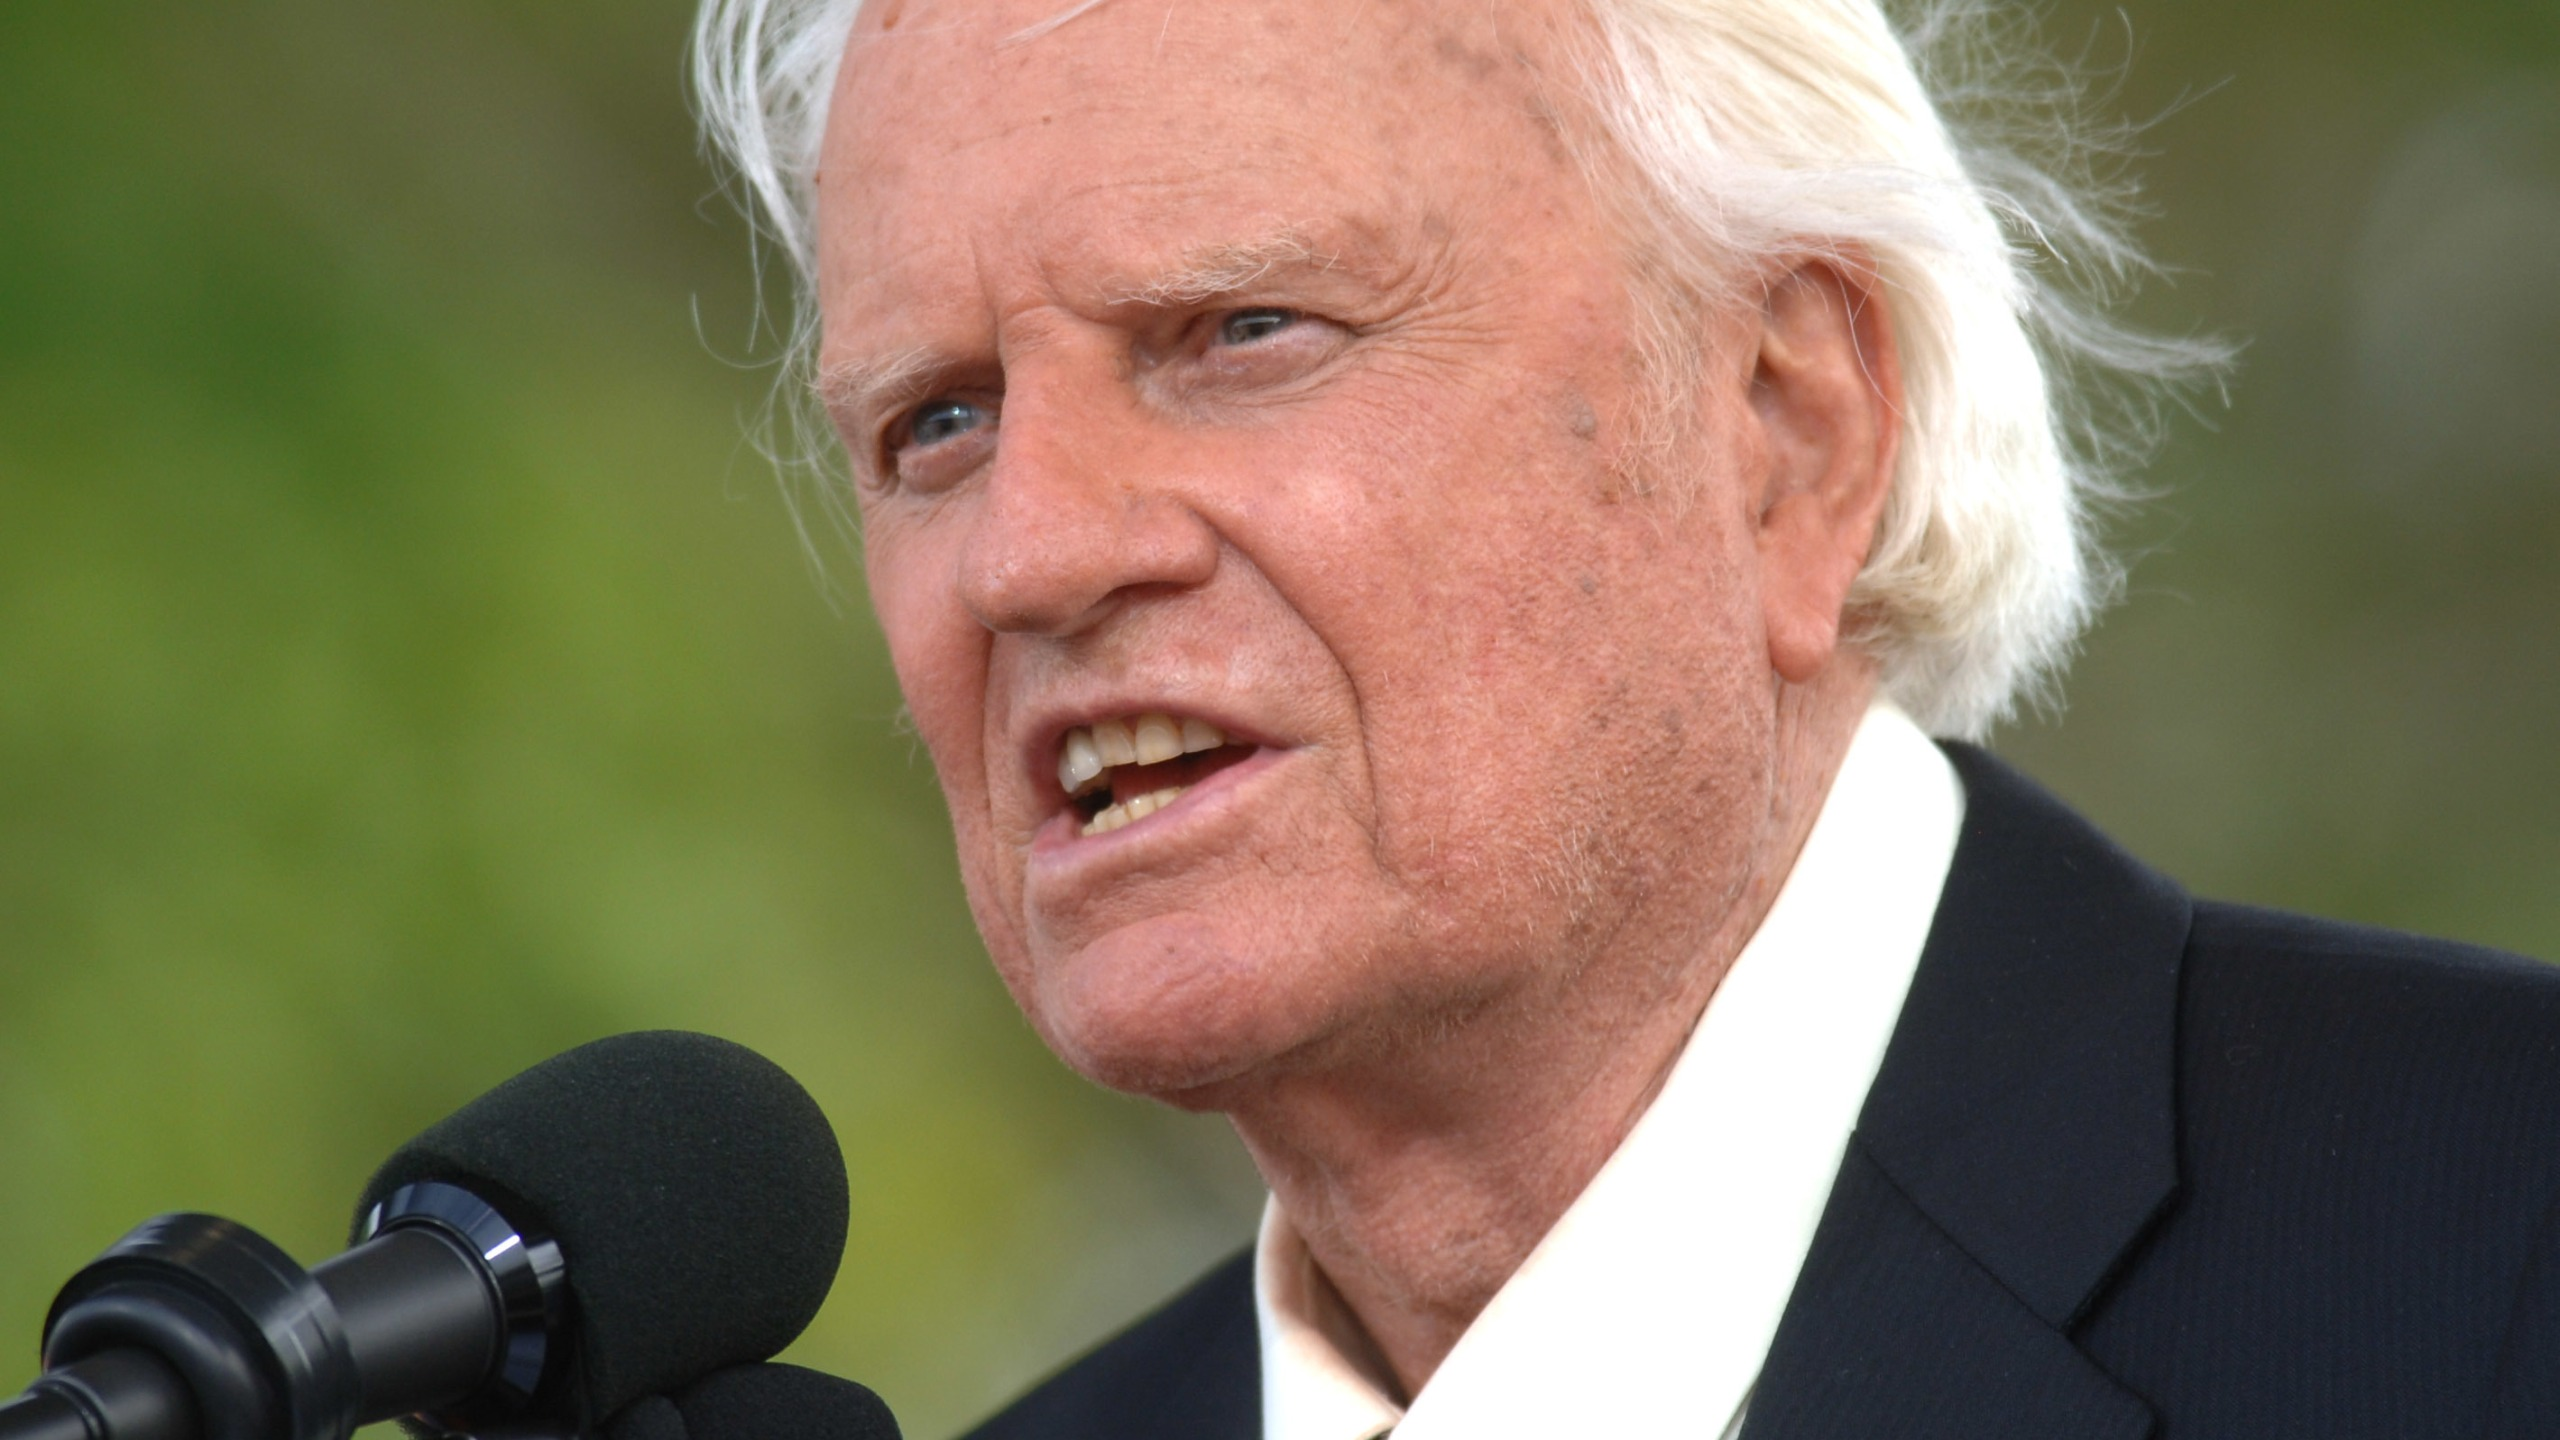 Obit_Billy_Graham_10294-159532.jpg31856190